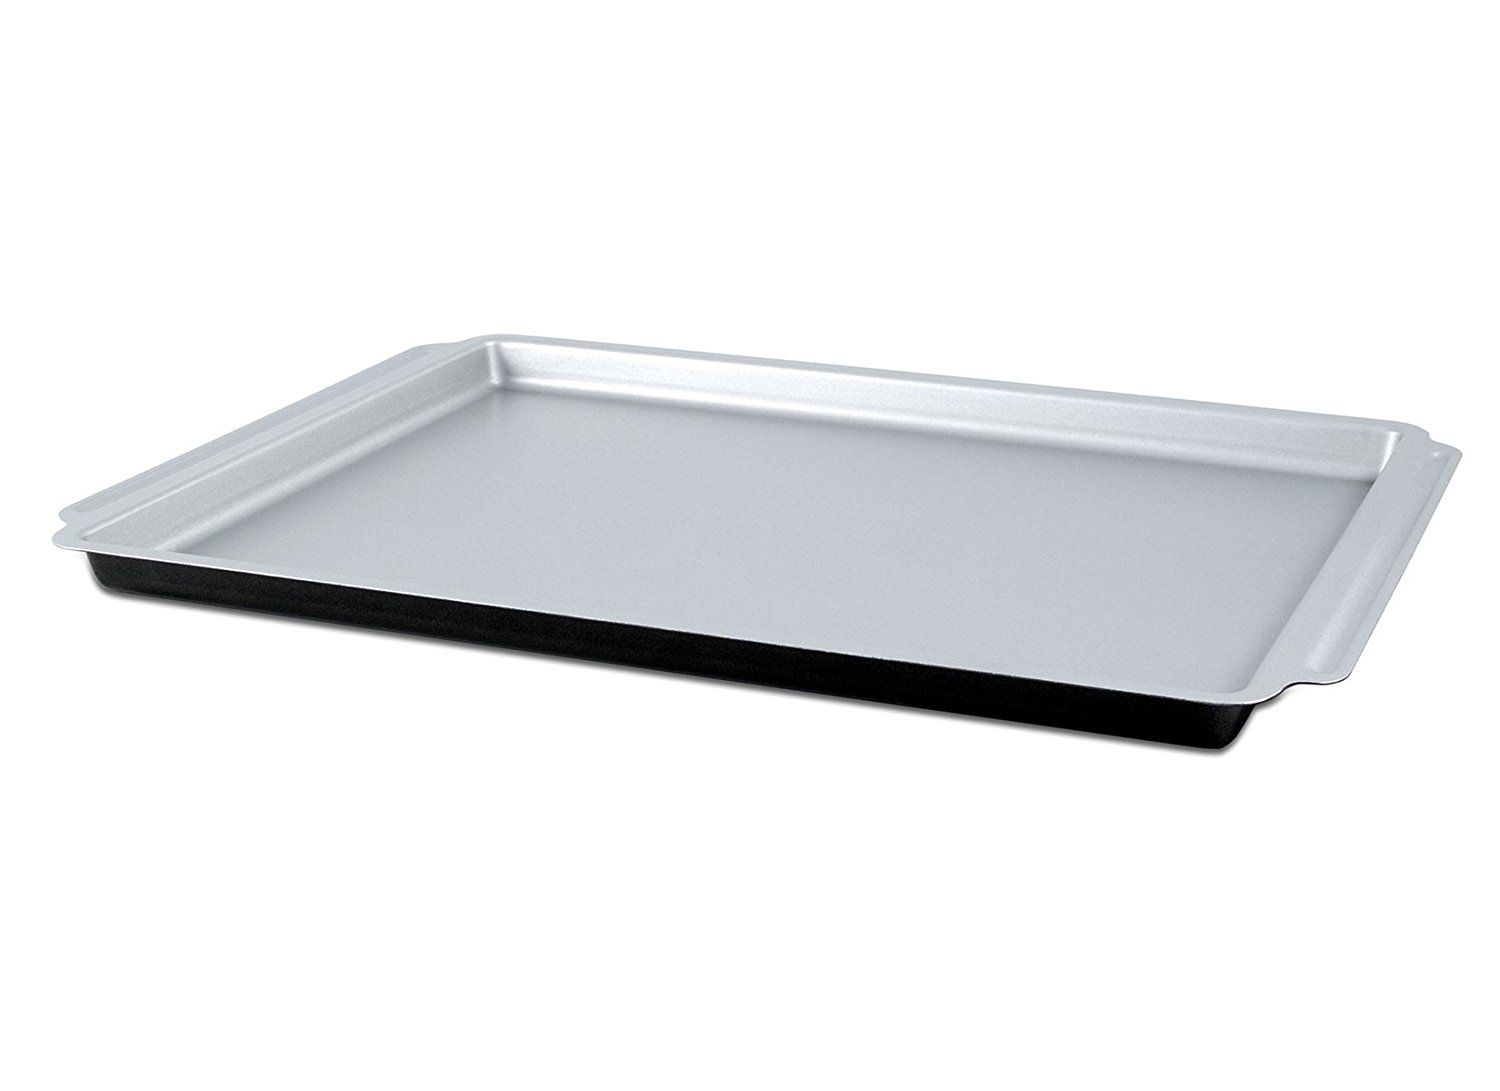 Culinary Institute Of America Masters Collection Nonstick 10 1 4 X 15 1 4 Small Jelly Roll Pan See This Bakeware Set Jelly Roll Pan Baking Cookie Sheets